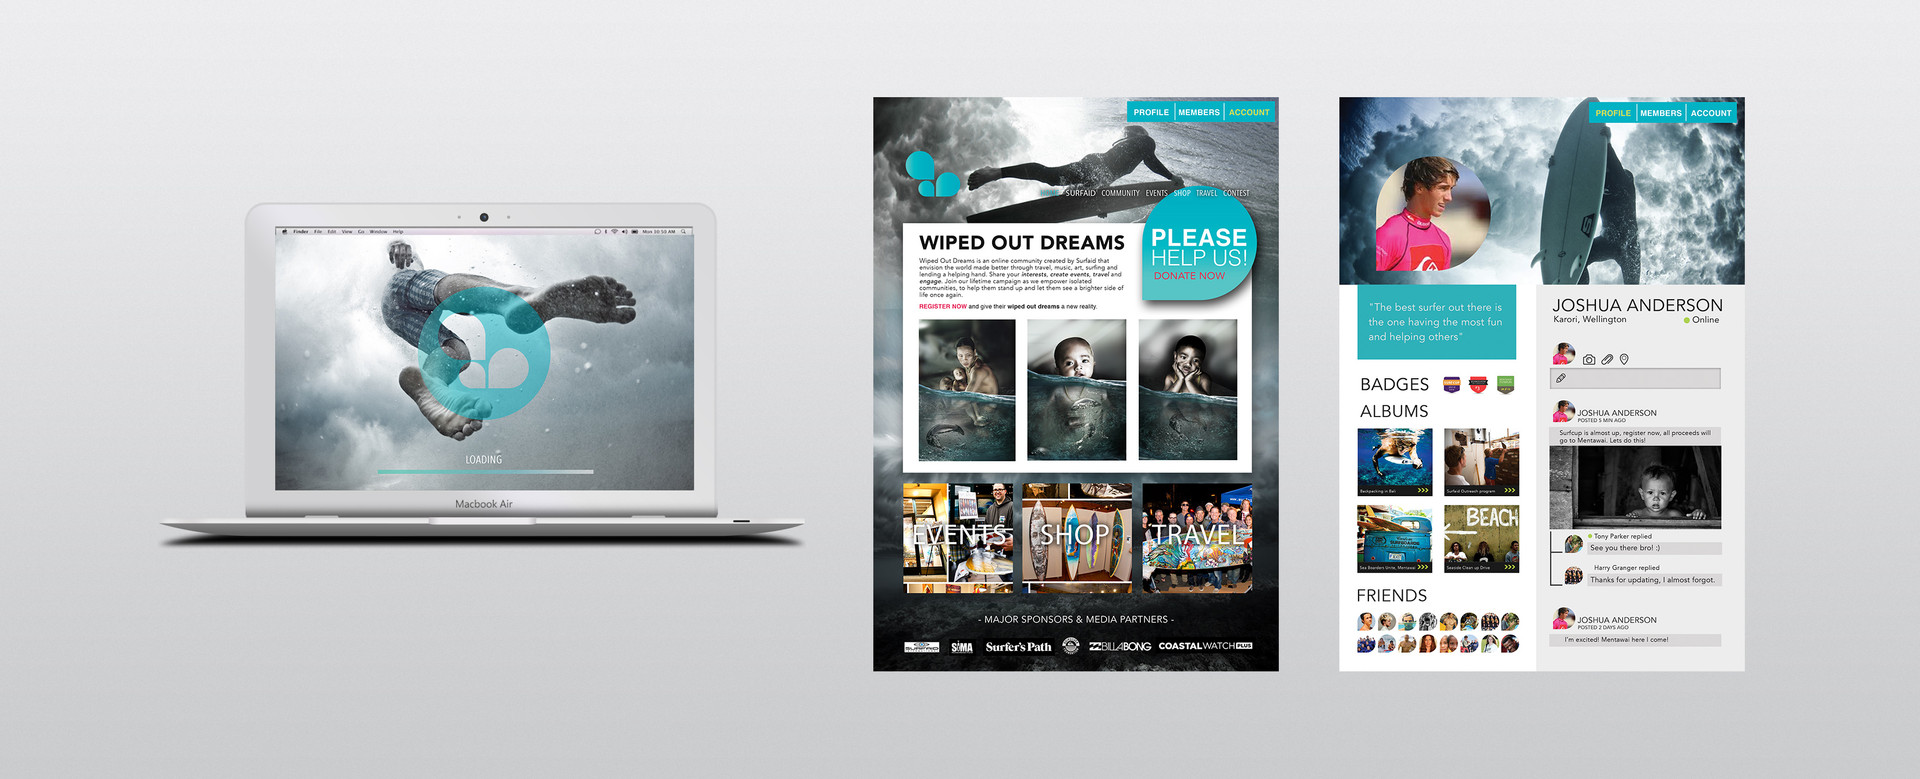 "SURFAID ""Wiped Out Dreams""  - Ad Campaign"